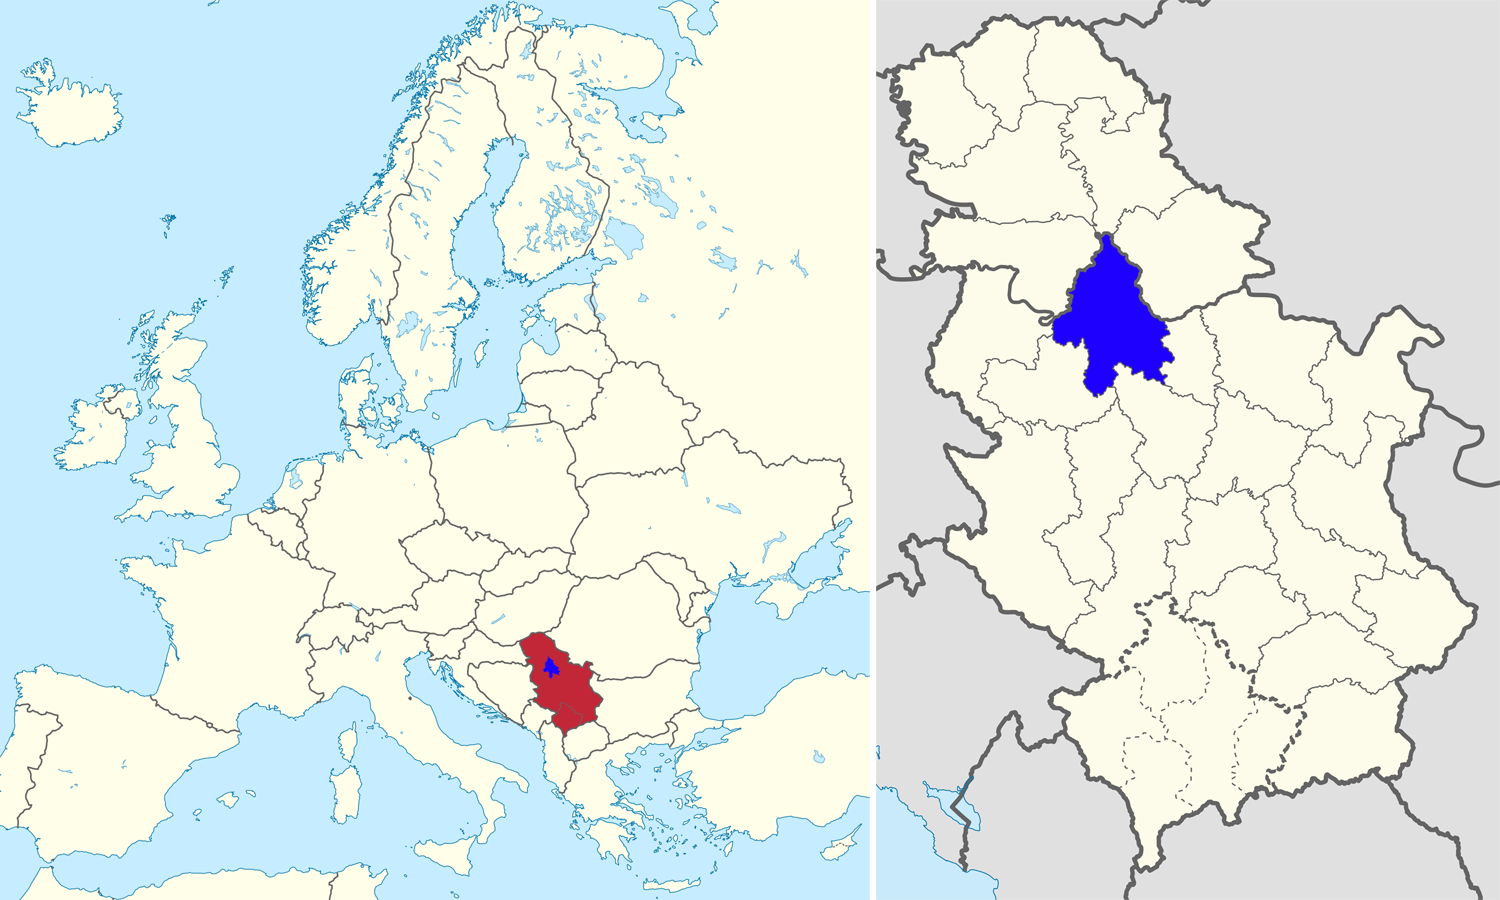 File:Belgrade in Serbia and Europe.png   Wikimedia Commons